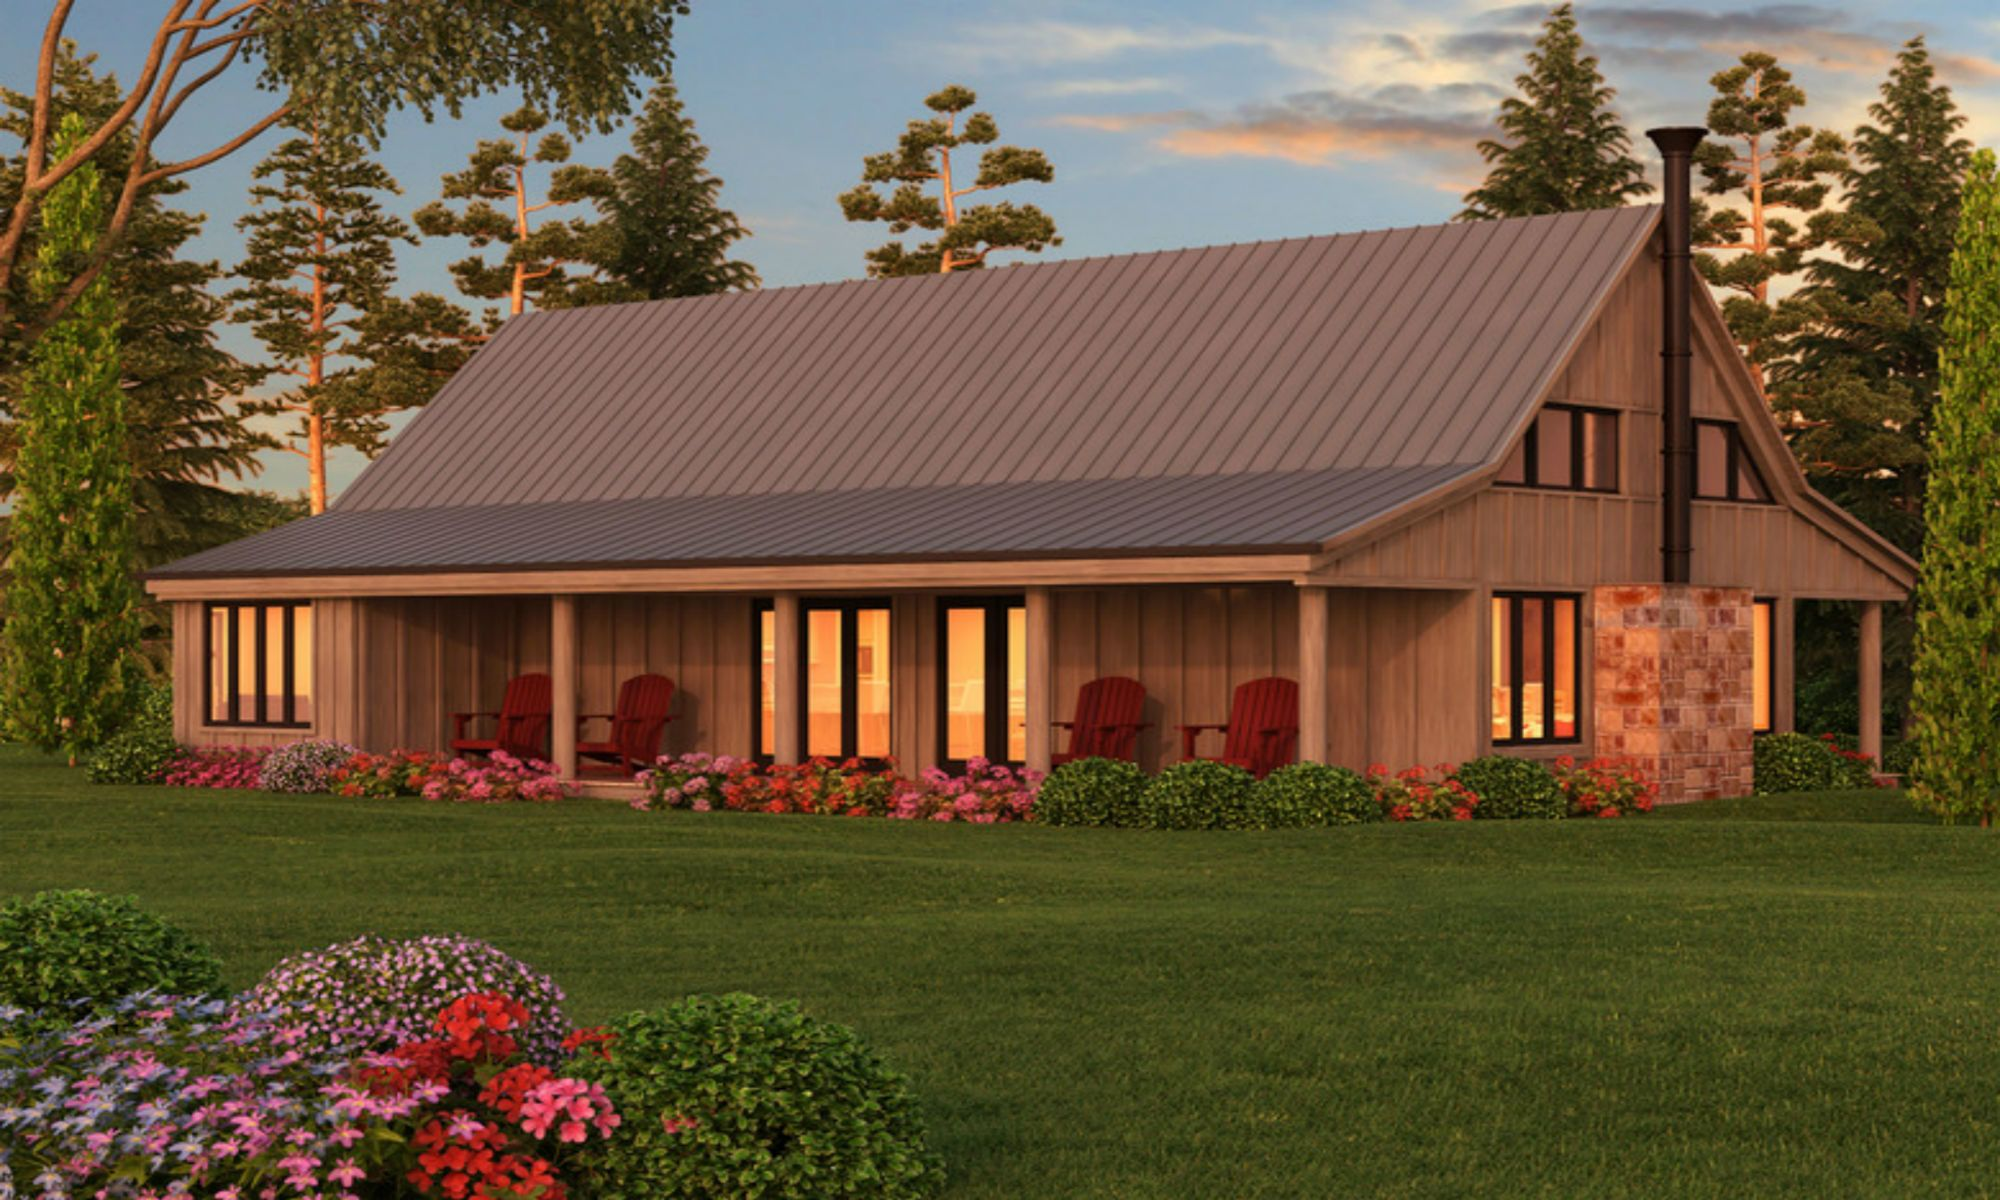 Pole barn homes pole barn homes pinterest barn for Cost to build a pole barn home